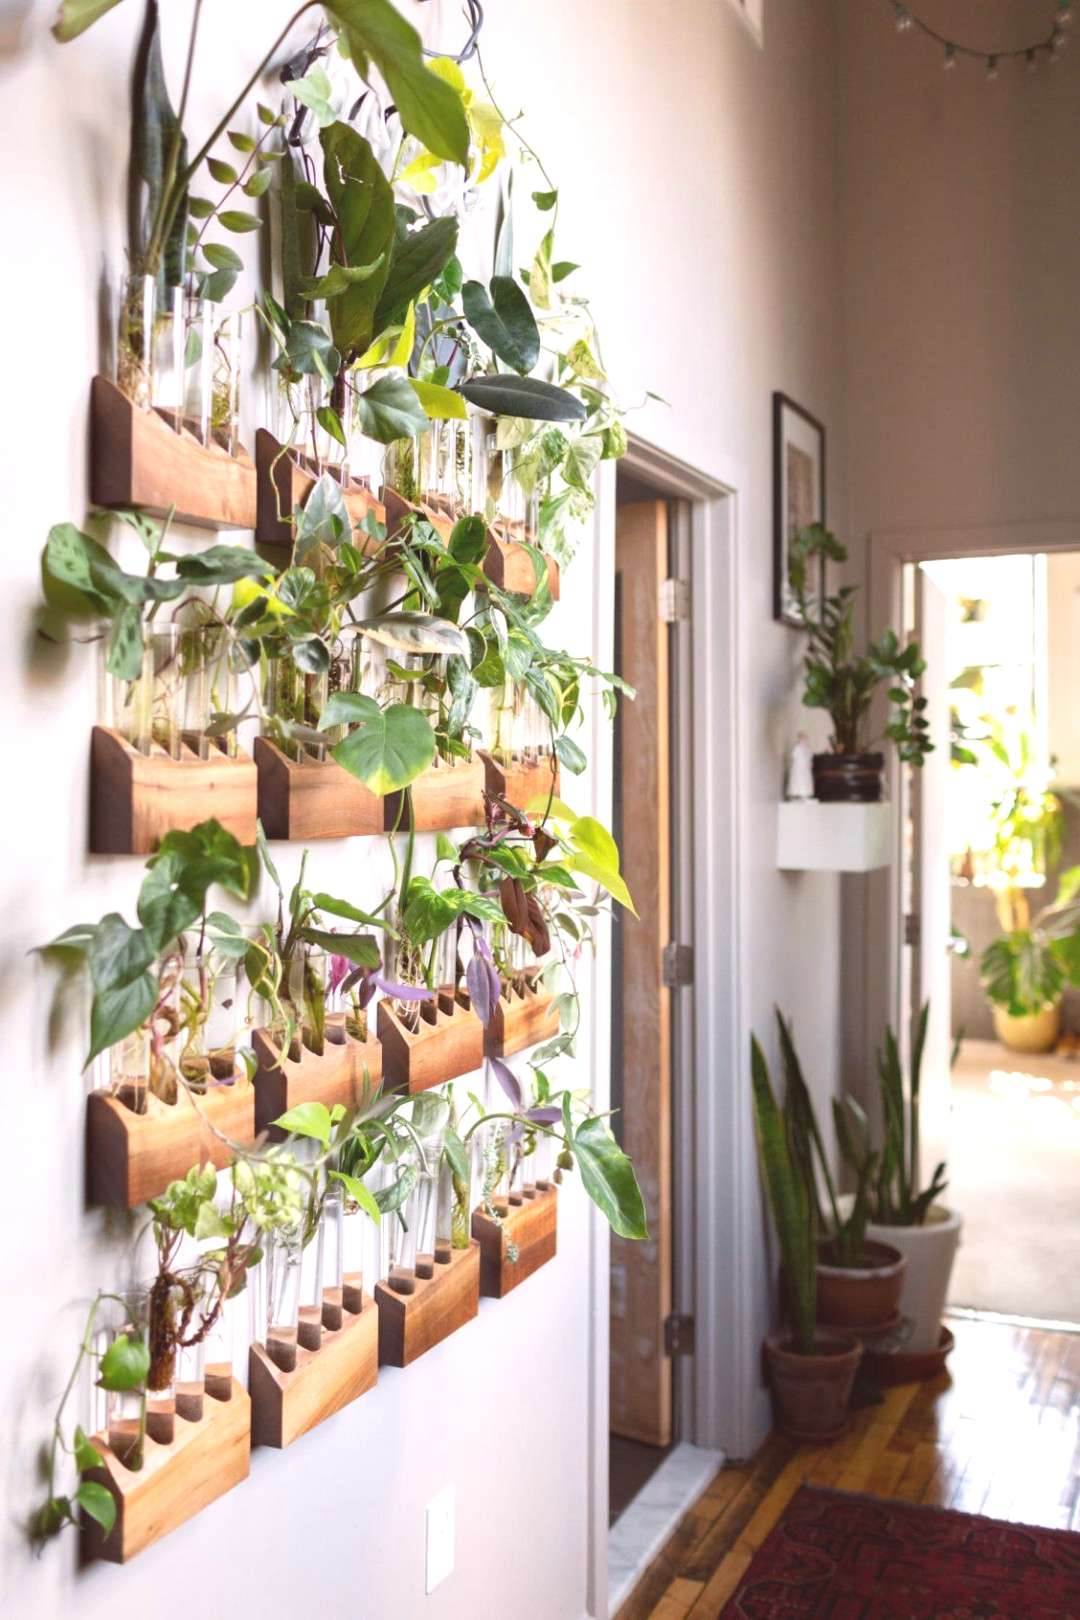 The Plant Doctor's Baltimore Home and Studio Are Absolutely Filled With Gorgeous Green Plants#abs